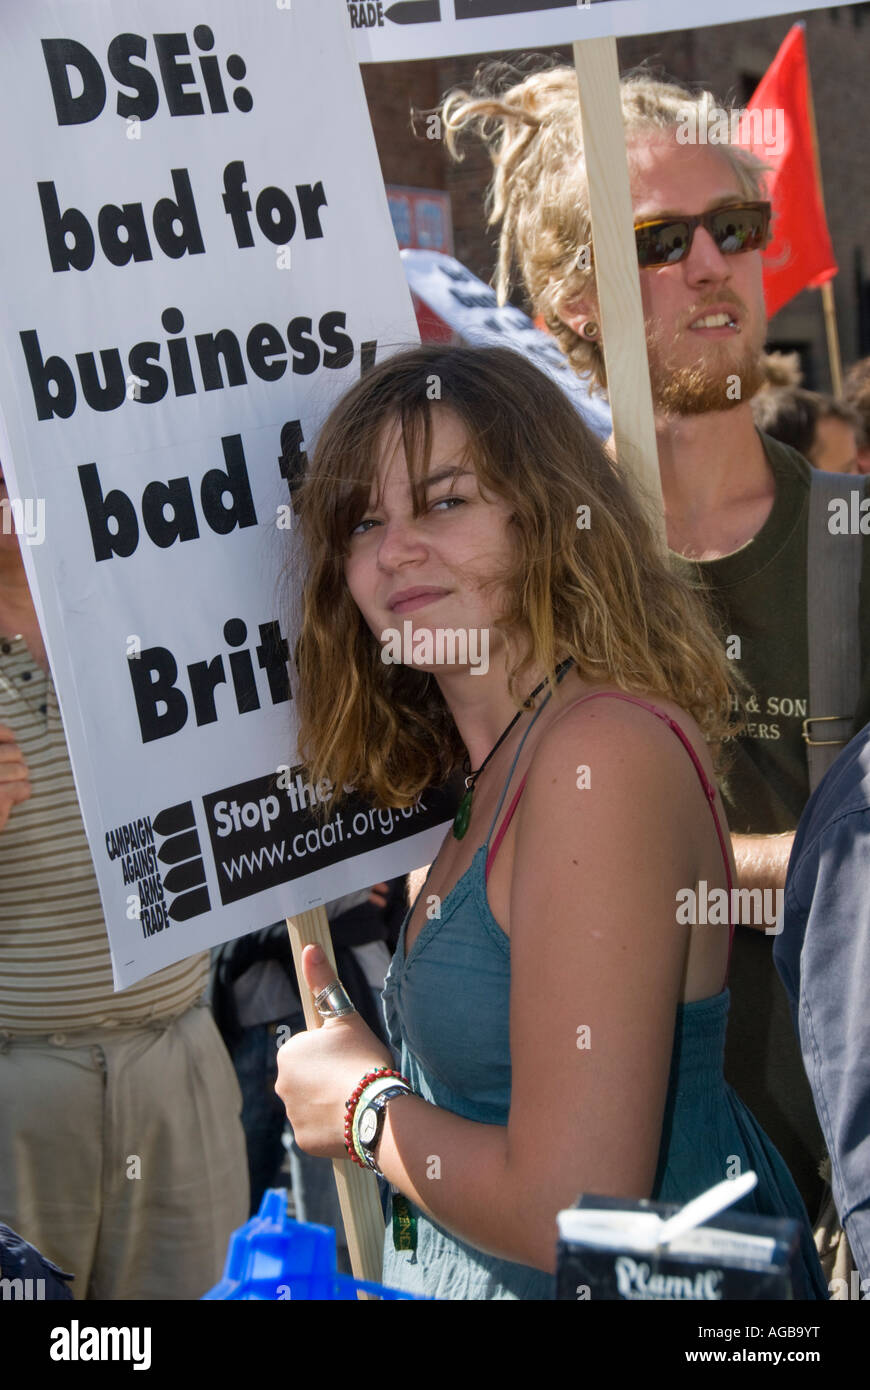 DSEi: Bad for Business, bad for Britain reads the slogan on this placard at the rally against the arms fair in London. Stock Photo